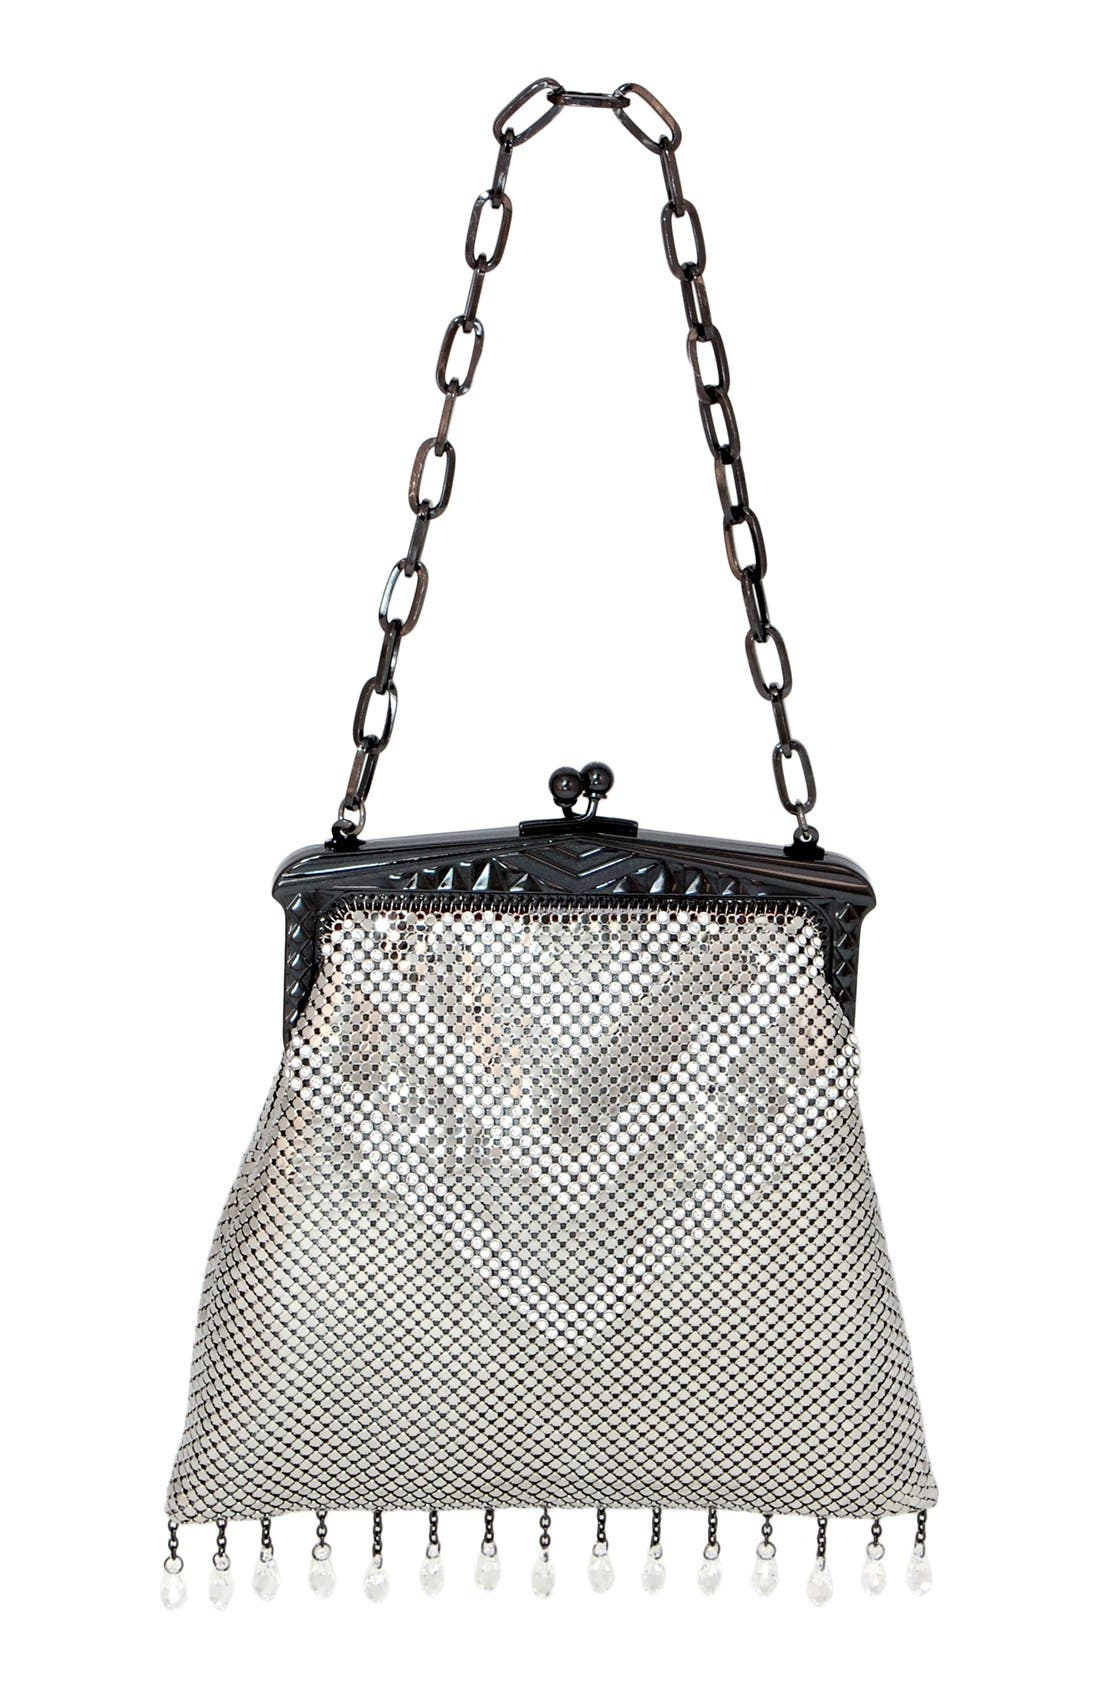 Main Image - Whiting & Davis 'Heritage - Deco' Mesh Clutch